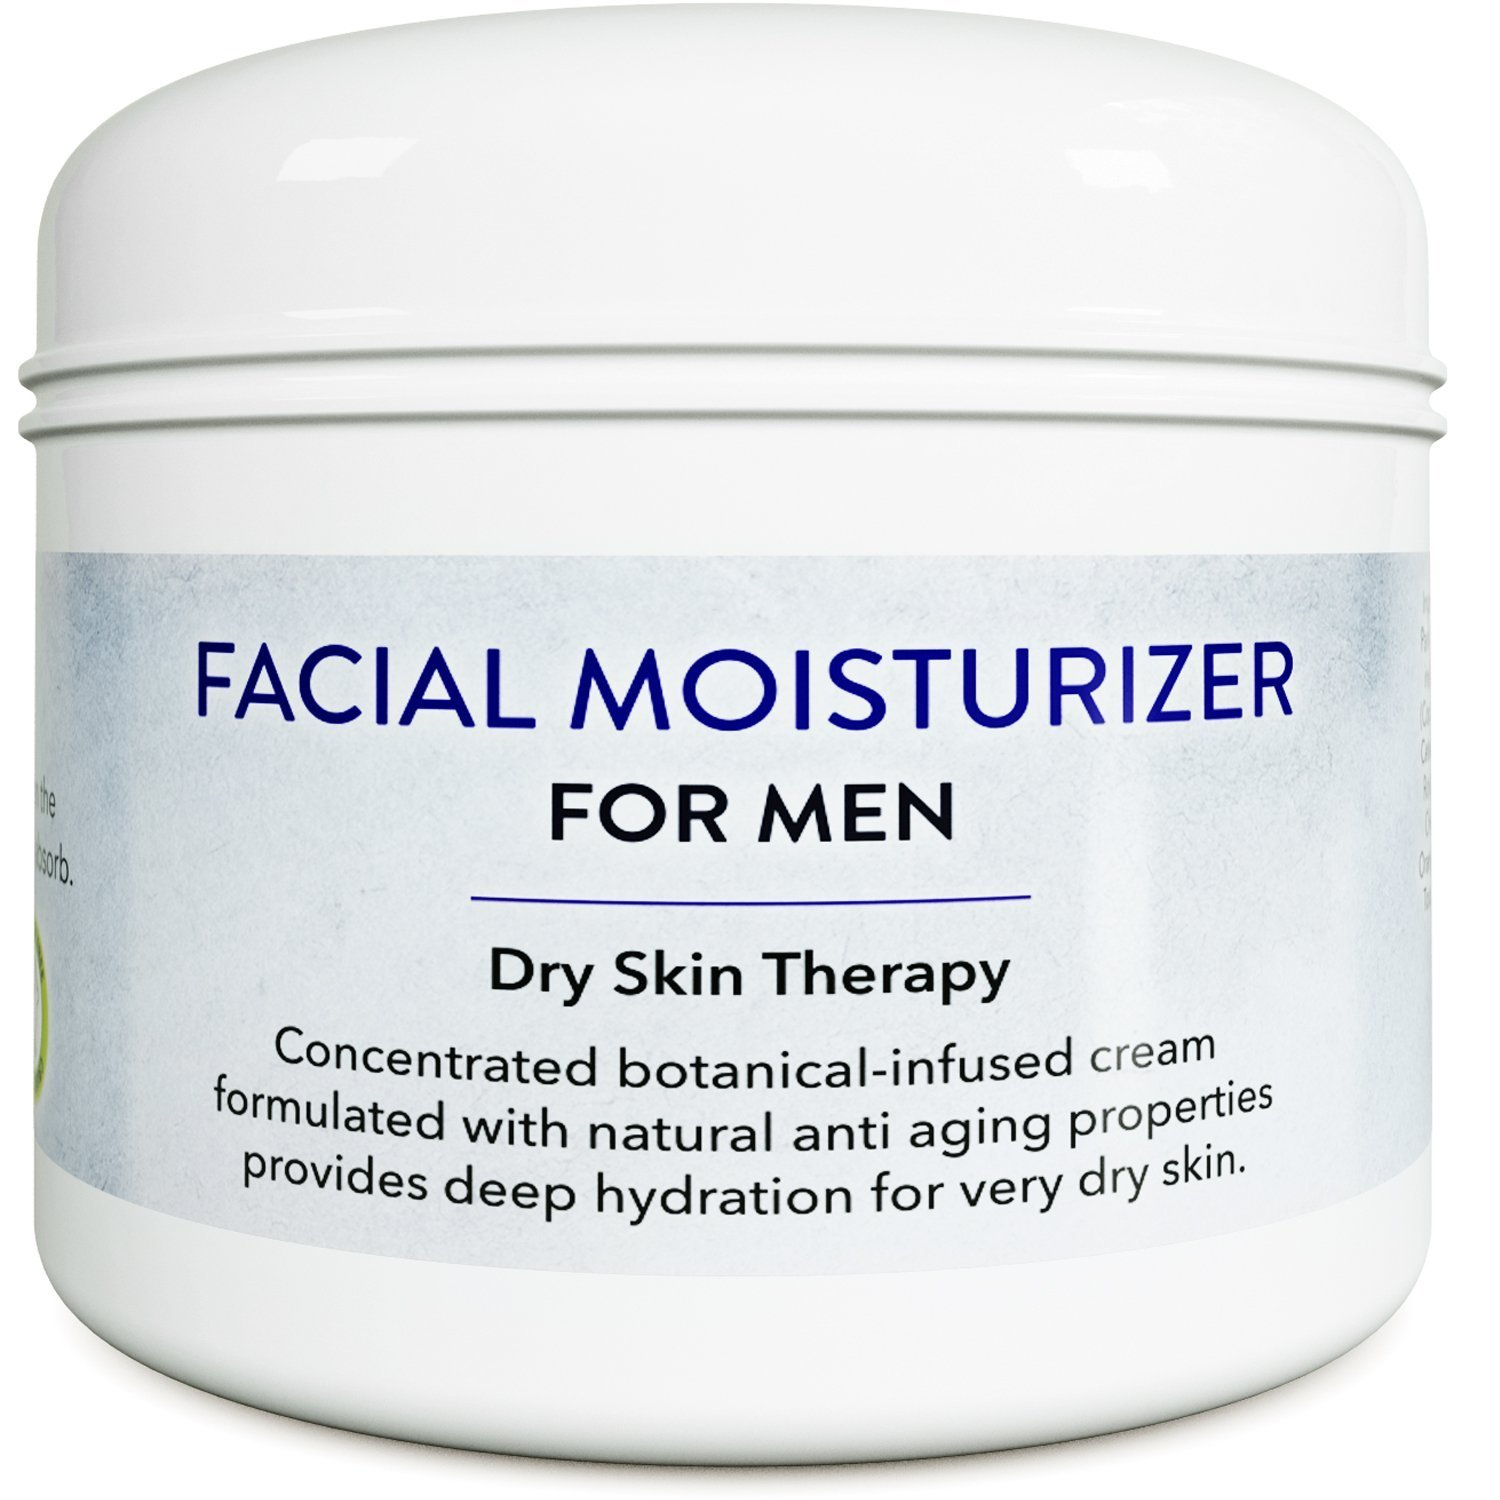 Best All Natural Face Moisturizer For Dry Skin